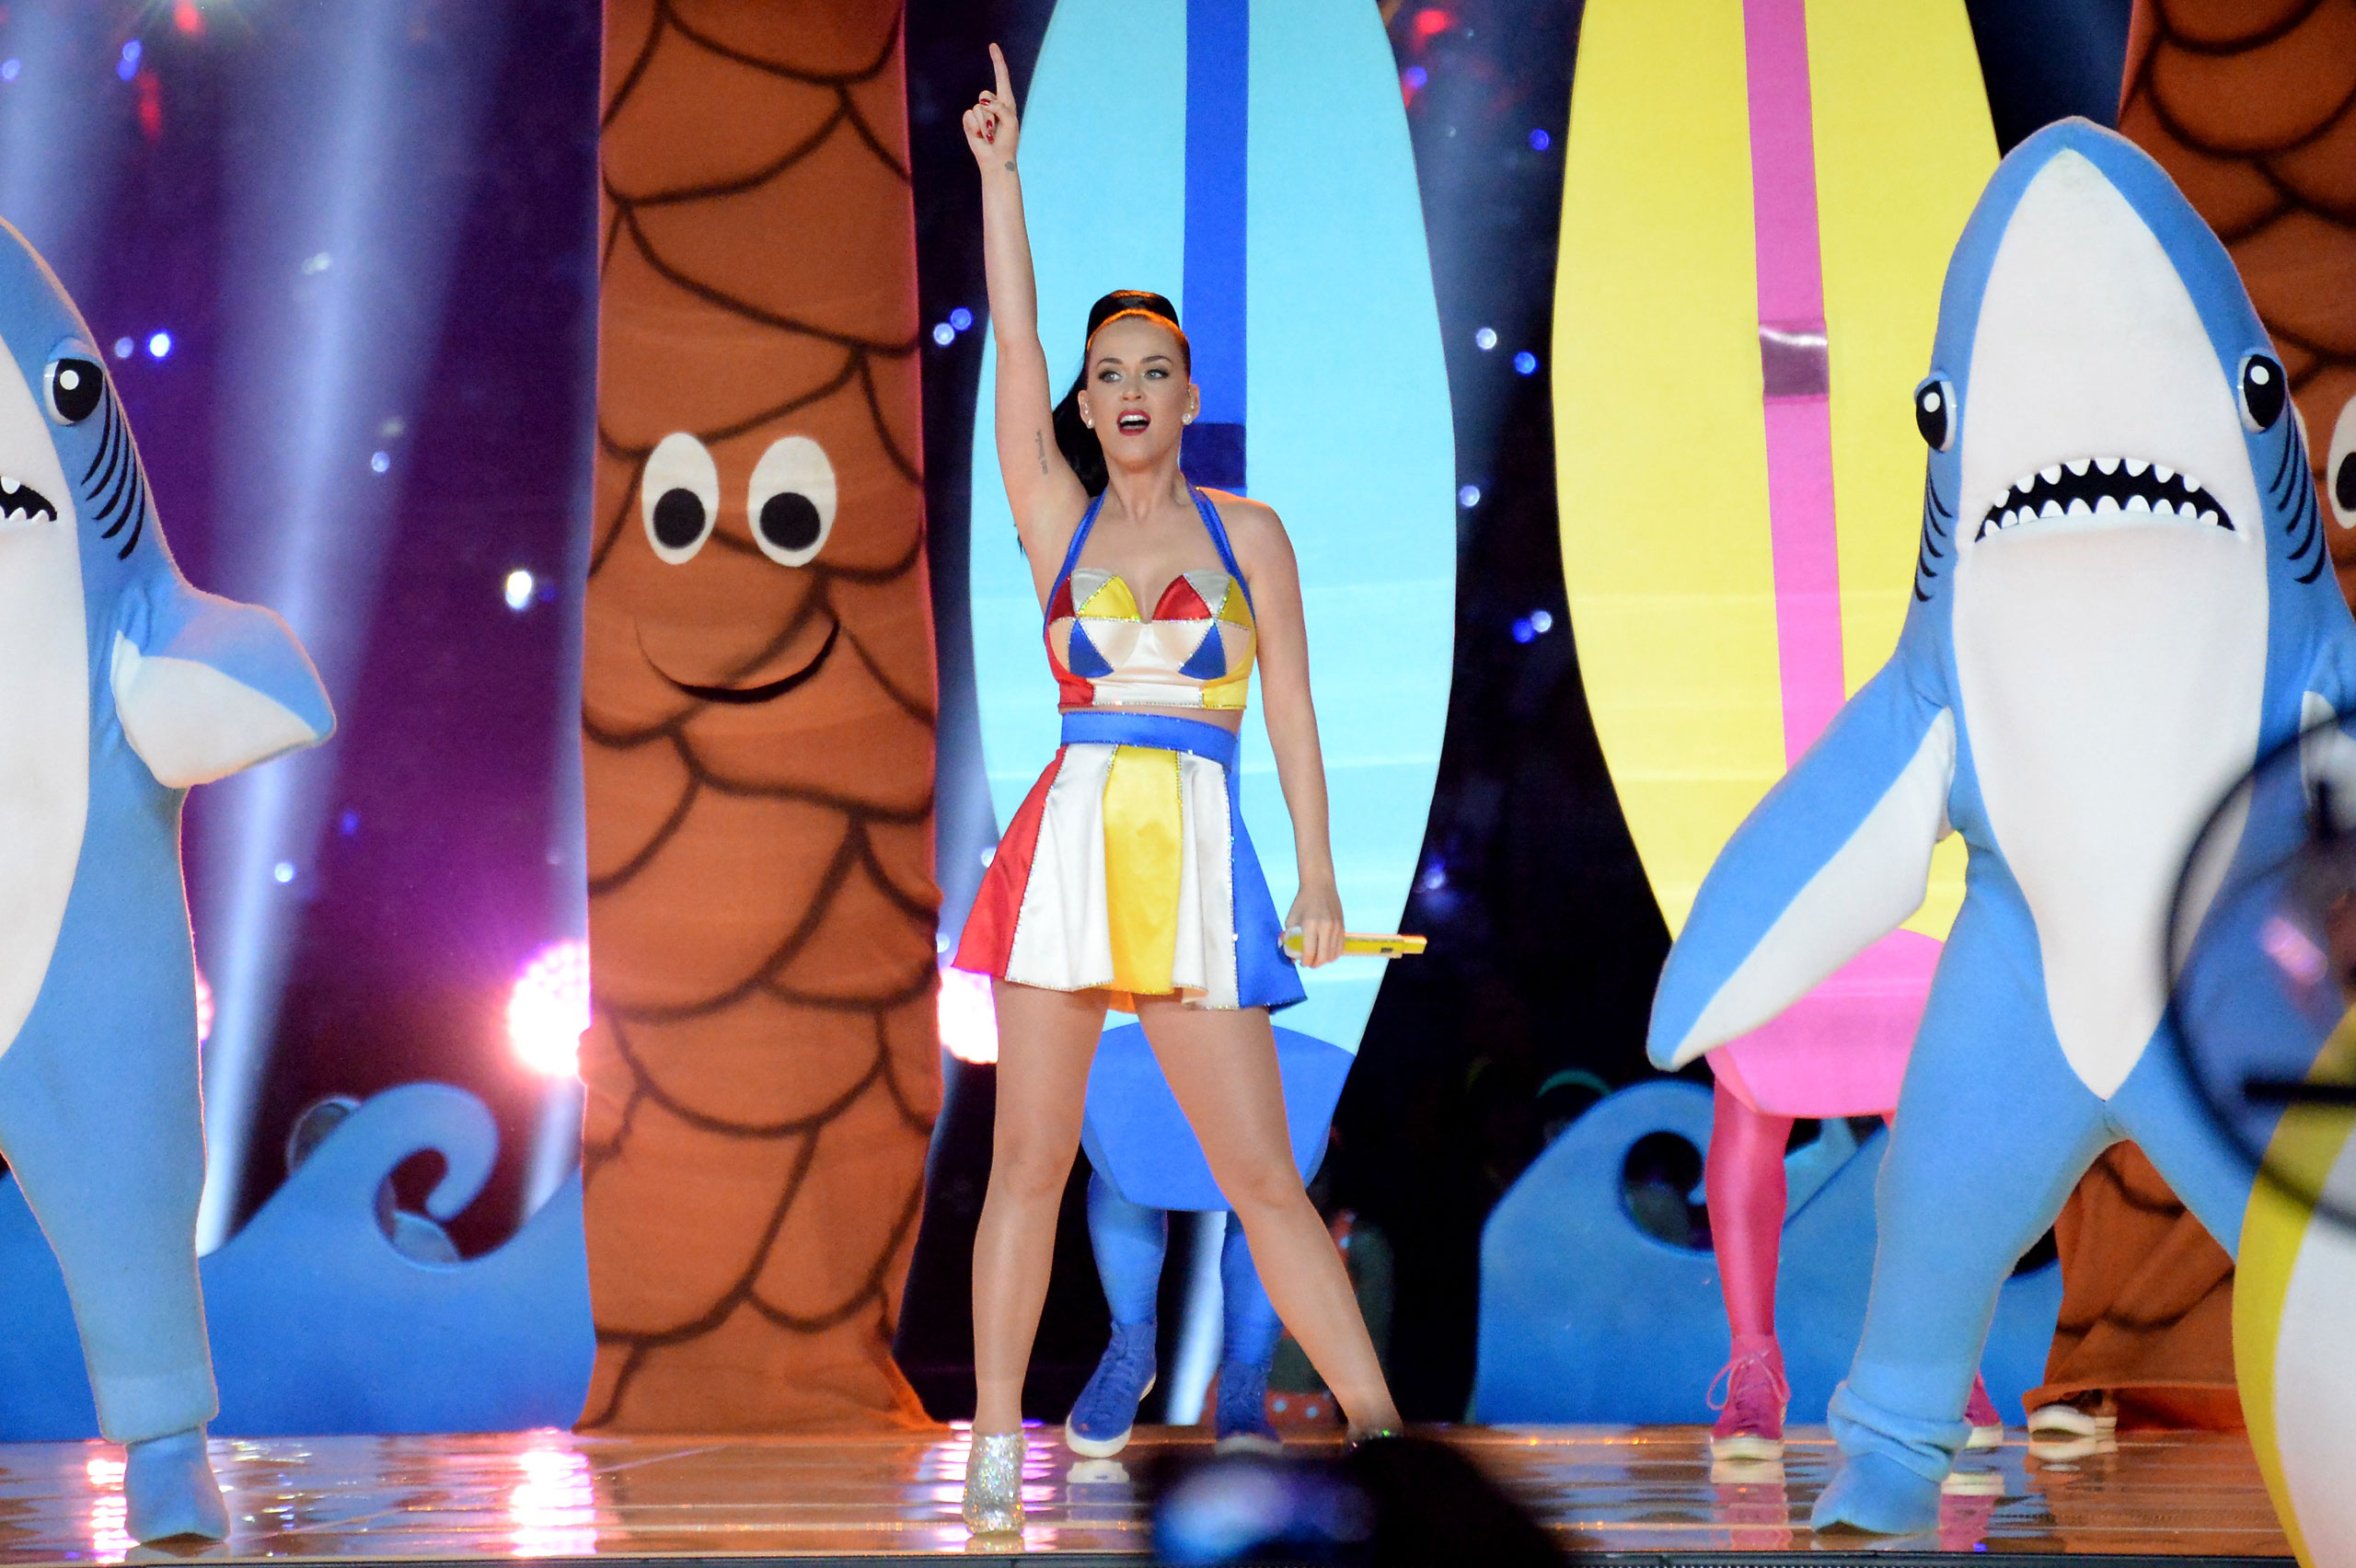 Katy Perry performs onstage during the Pepsi Super Bowl XLIX Halftime Show at University of Phoenix Stadiumon Feb. 1, 2015 in Glendale, Ariz.